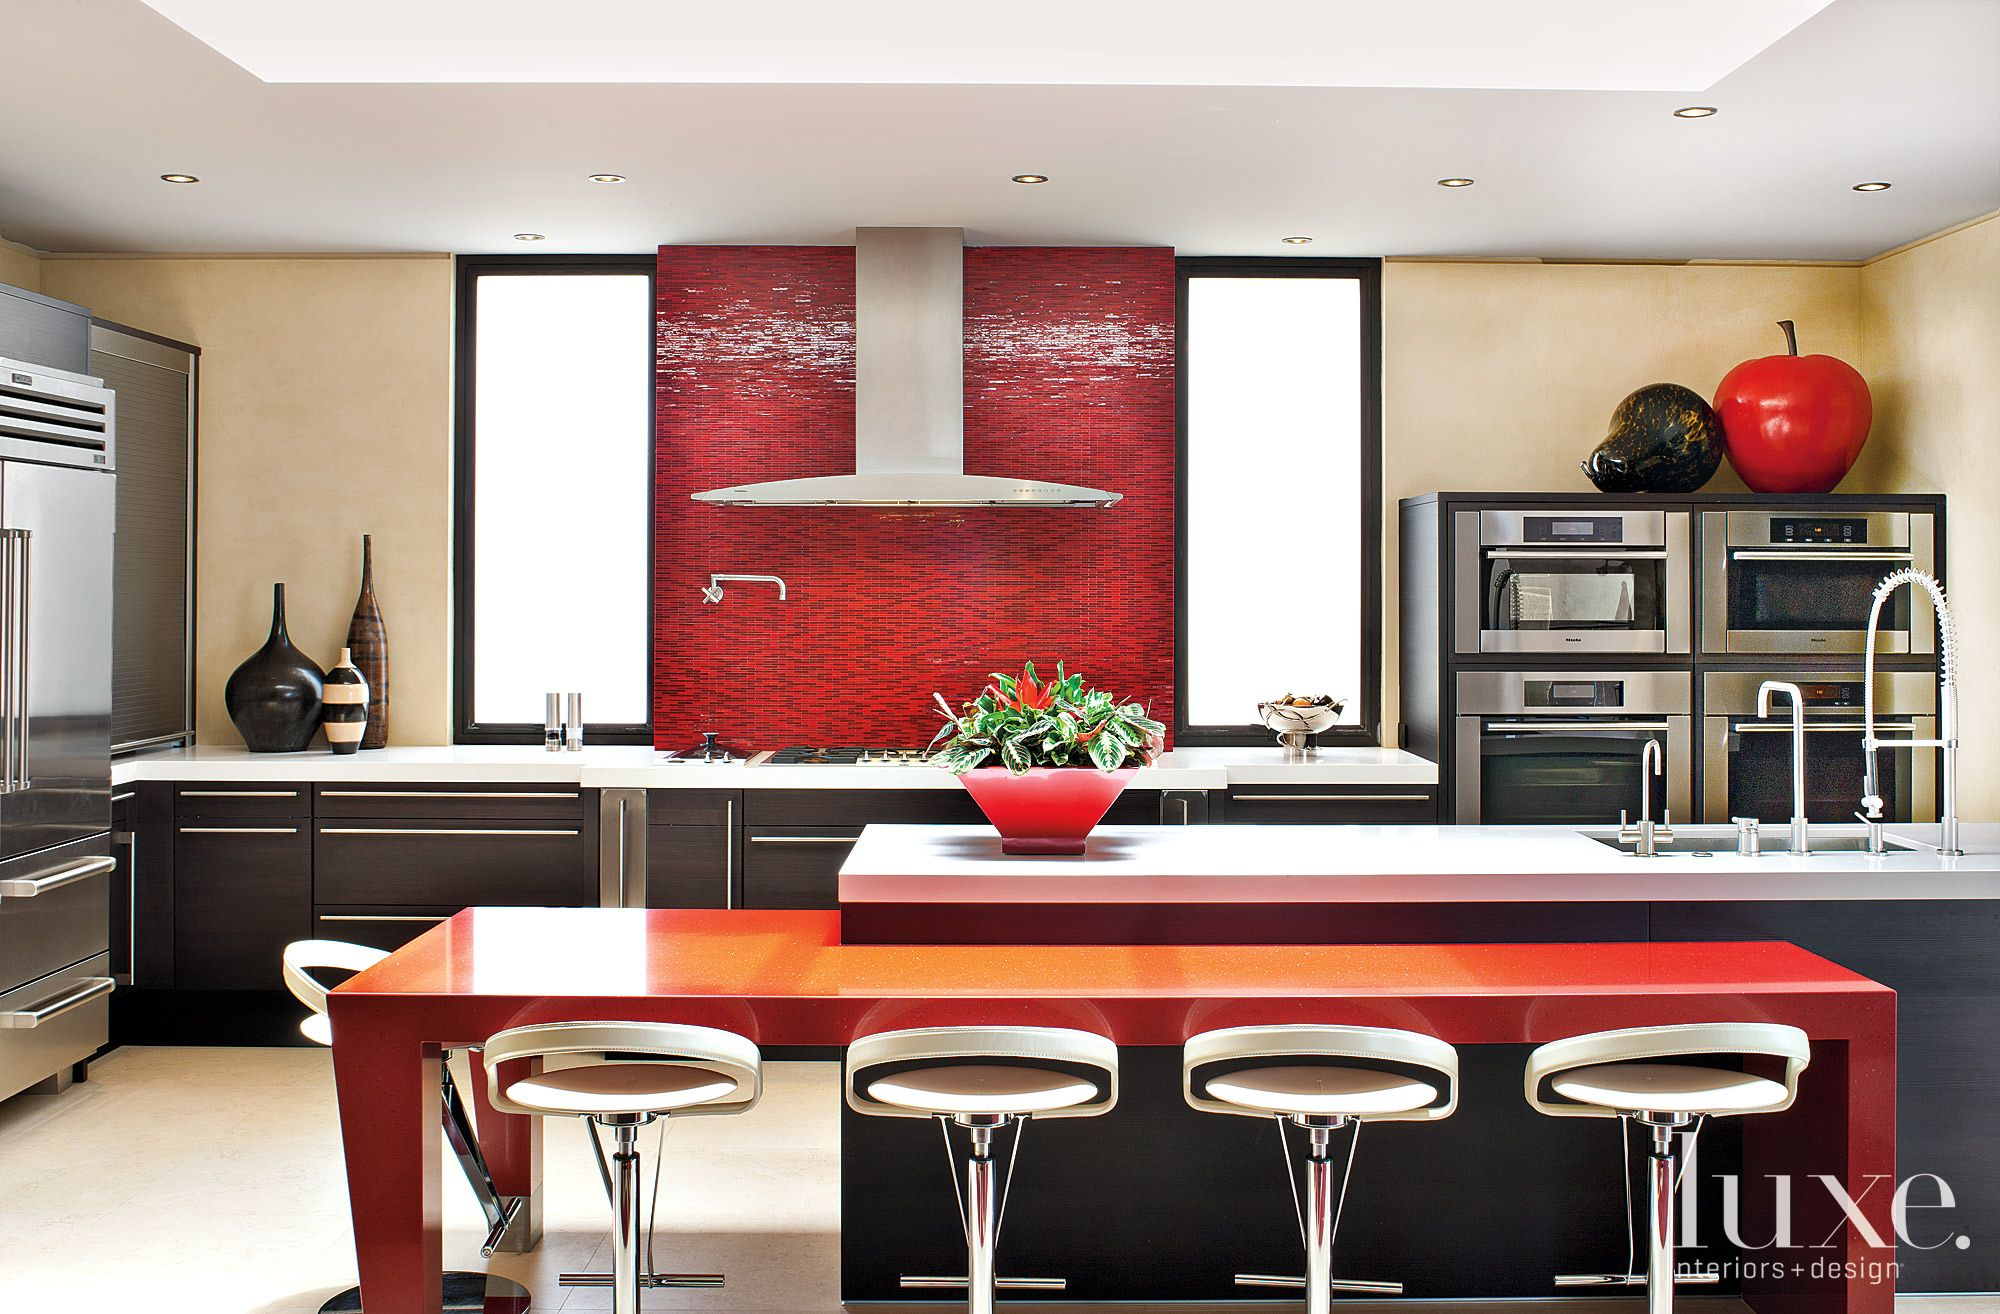 Modern Neutral Kitchen with Red Tilework